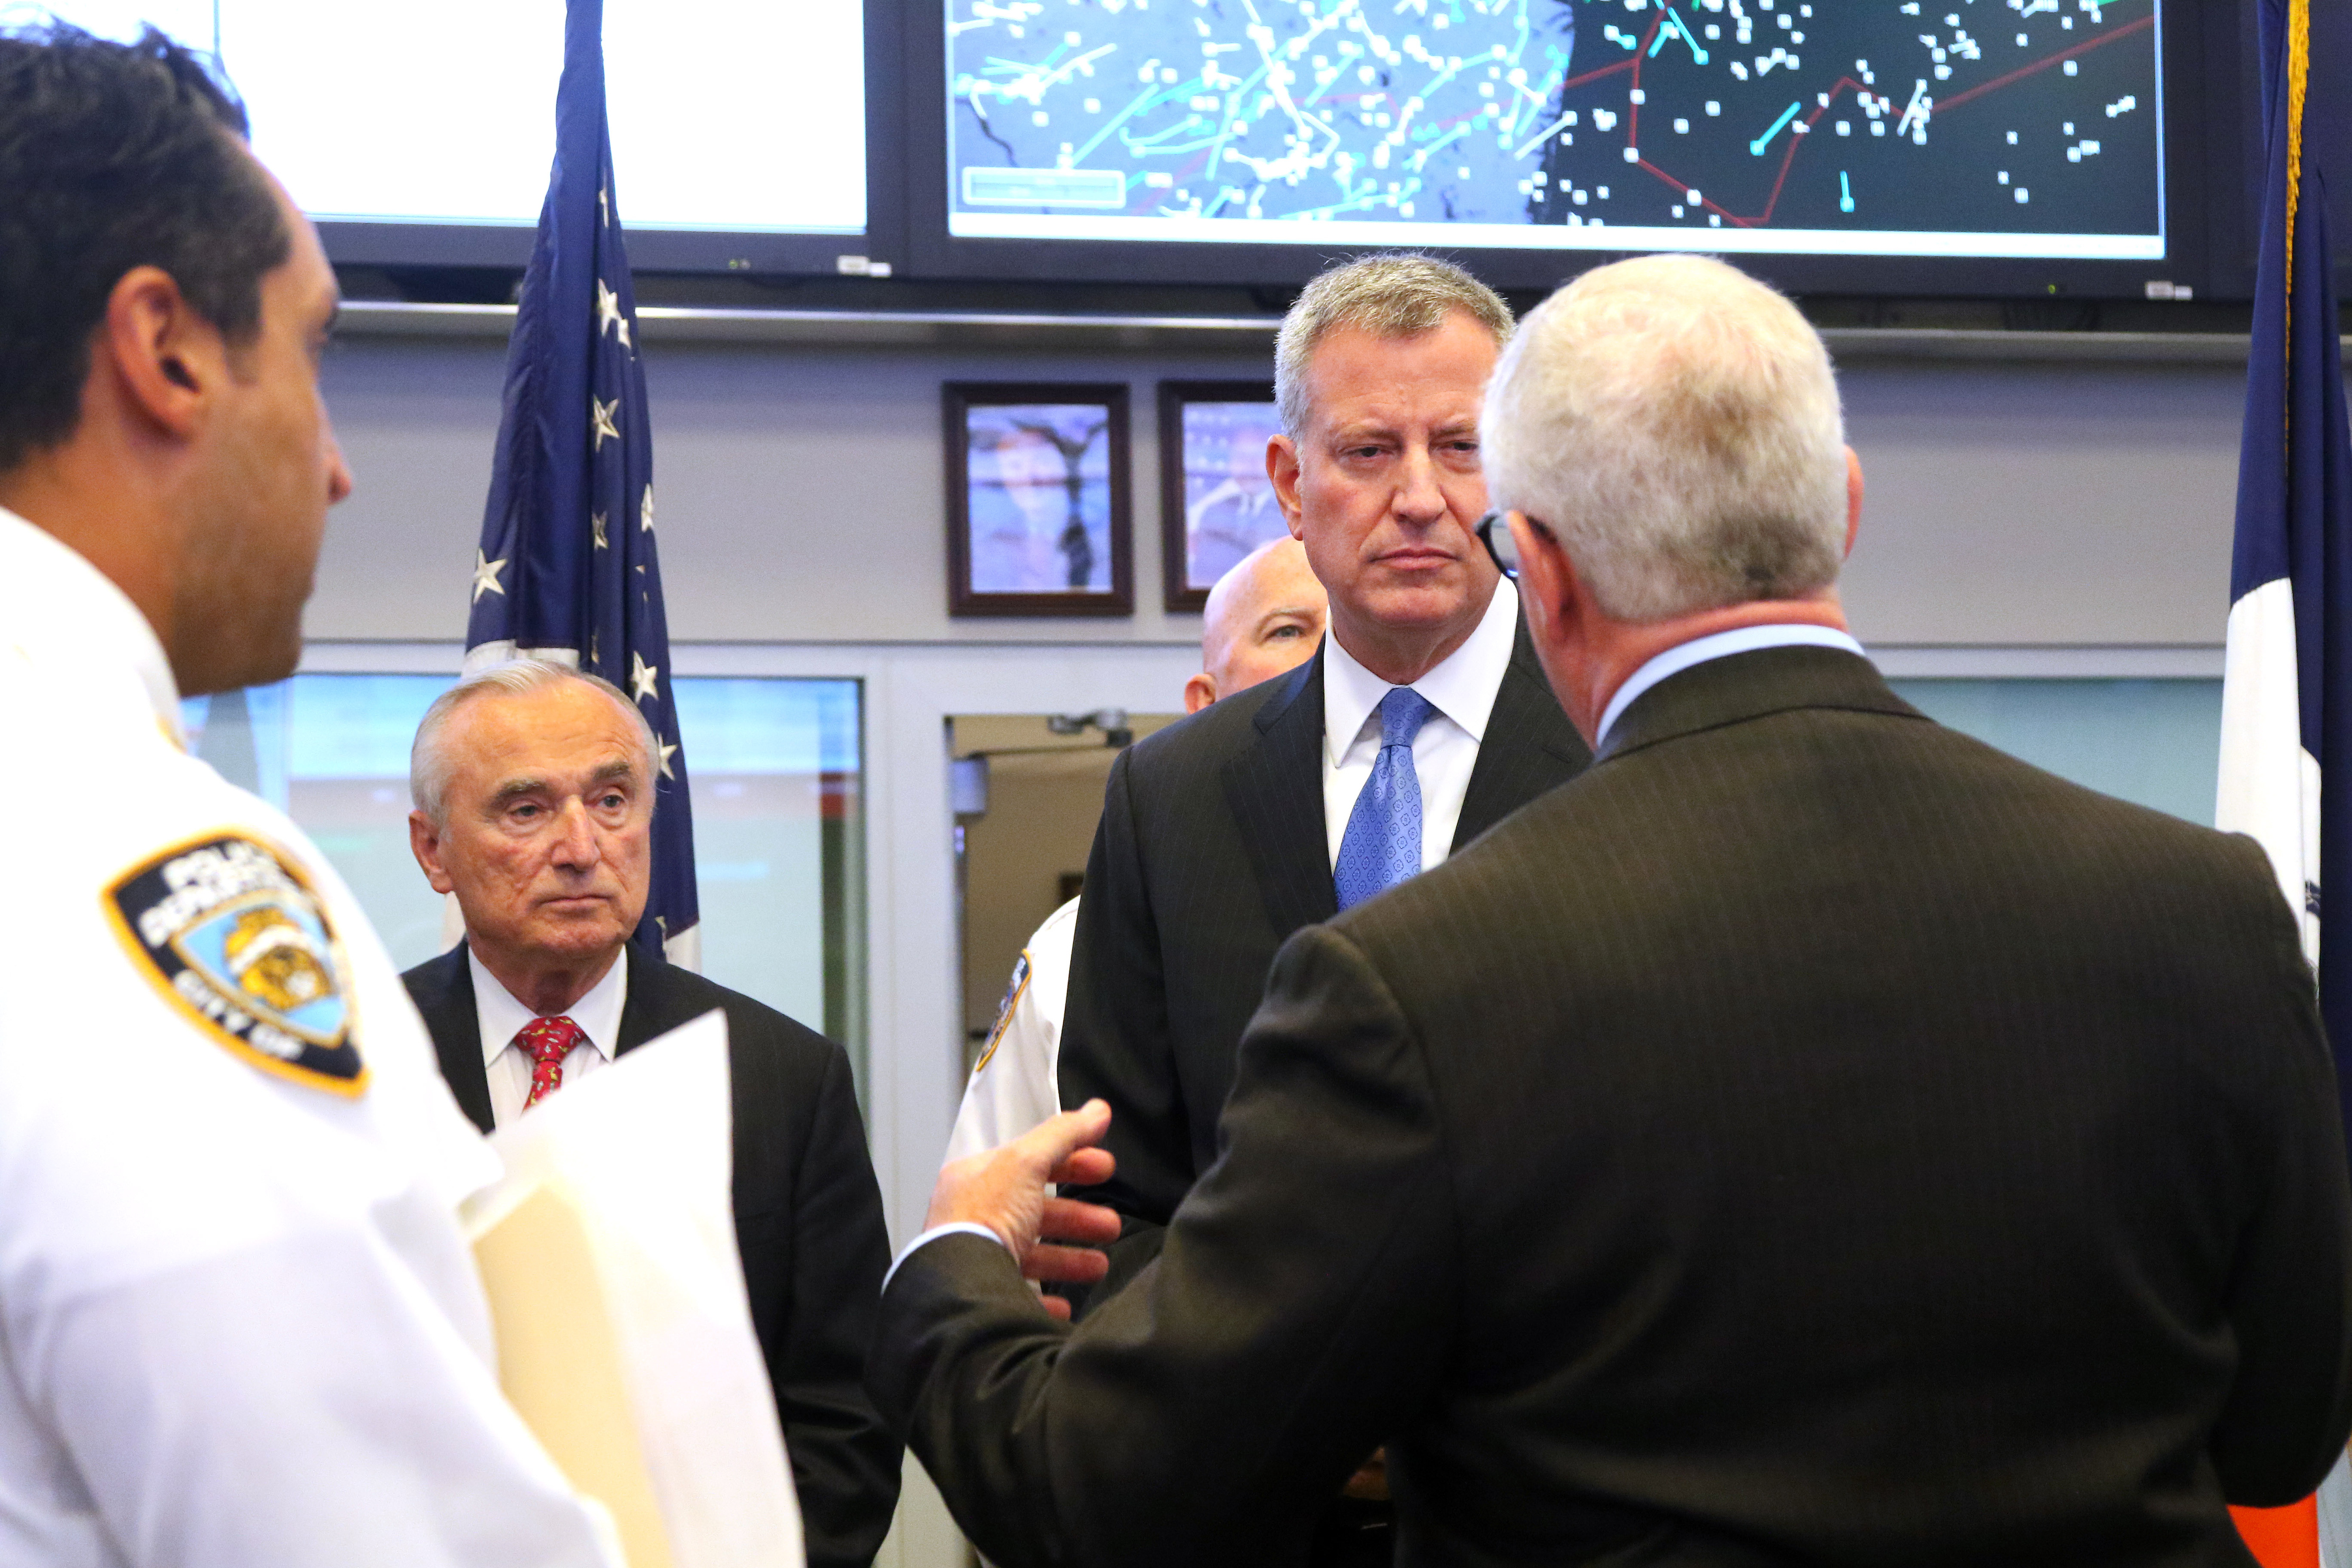 New York City Mayor Bill de Blasio and NYPD Commissioner William J. Bratton were briefed by NYPD Deputy Commissioner of Intelligence and Counter-Terrorism John Miller regarding security preparation of 'Visit of Pope Francis' during M.A.C.C. Exercise (Multi-Agency Coordination Center Exercise) at Joint Operations Center at New York City Police Headquarters. (Pool photo: Chang W. Lee/The New York Times)